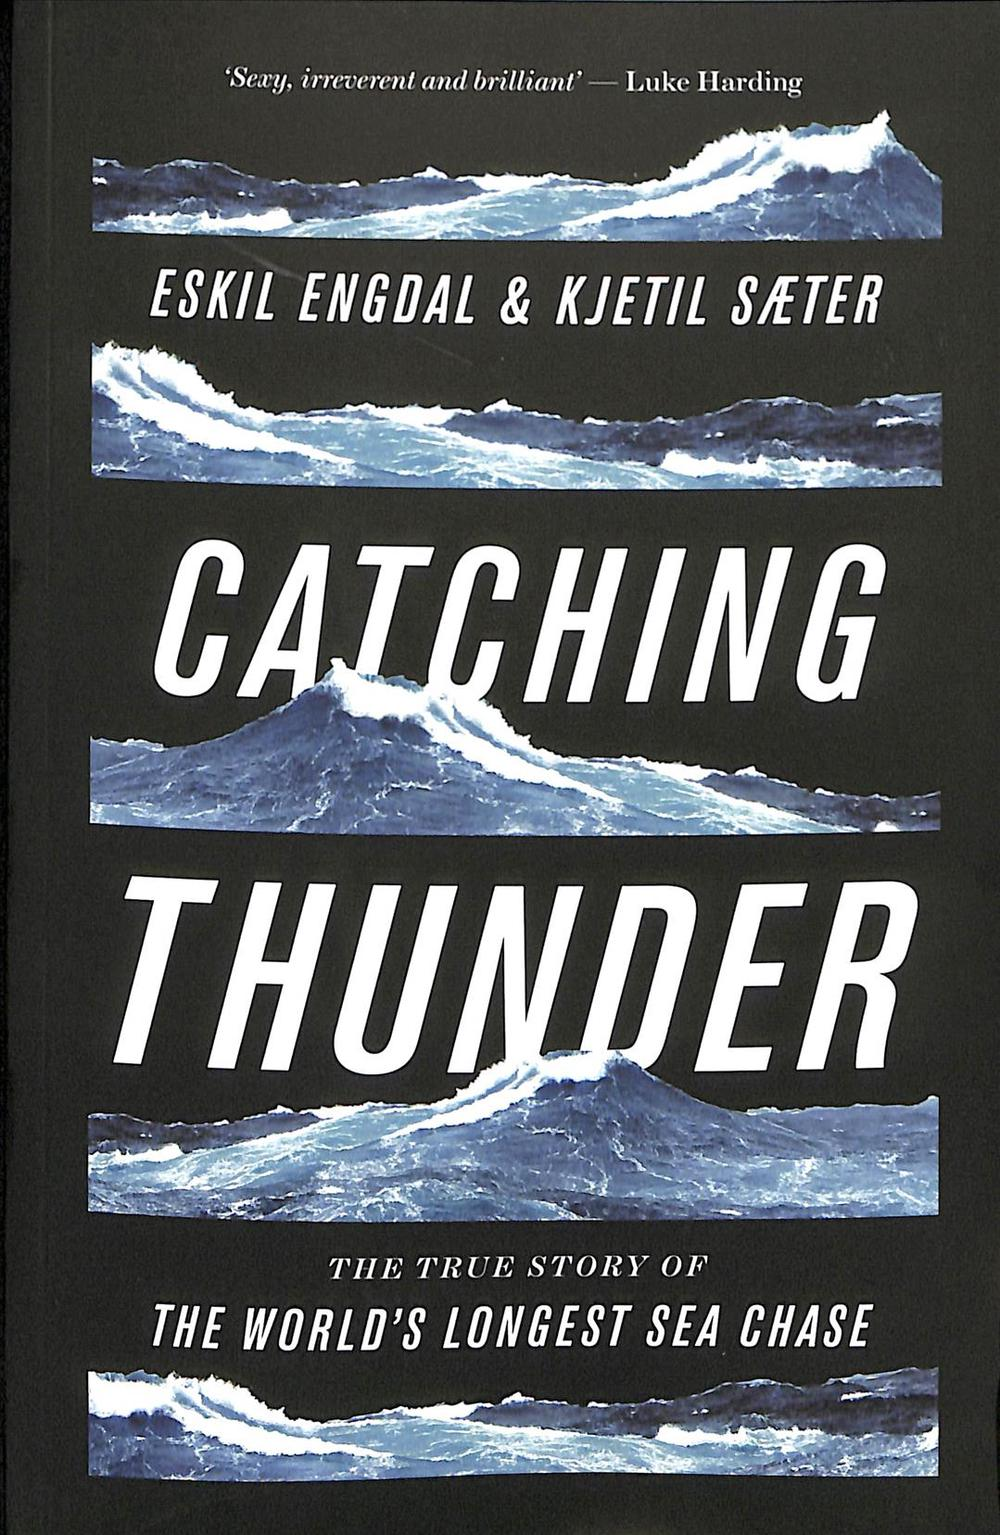 Catching ThunderThe True Story of the World's Longest Sea Chase